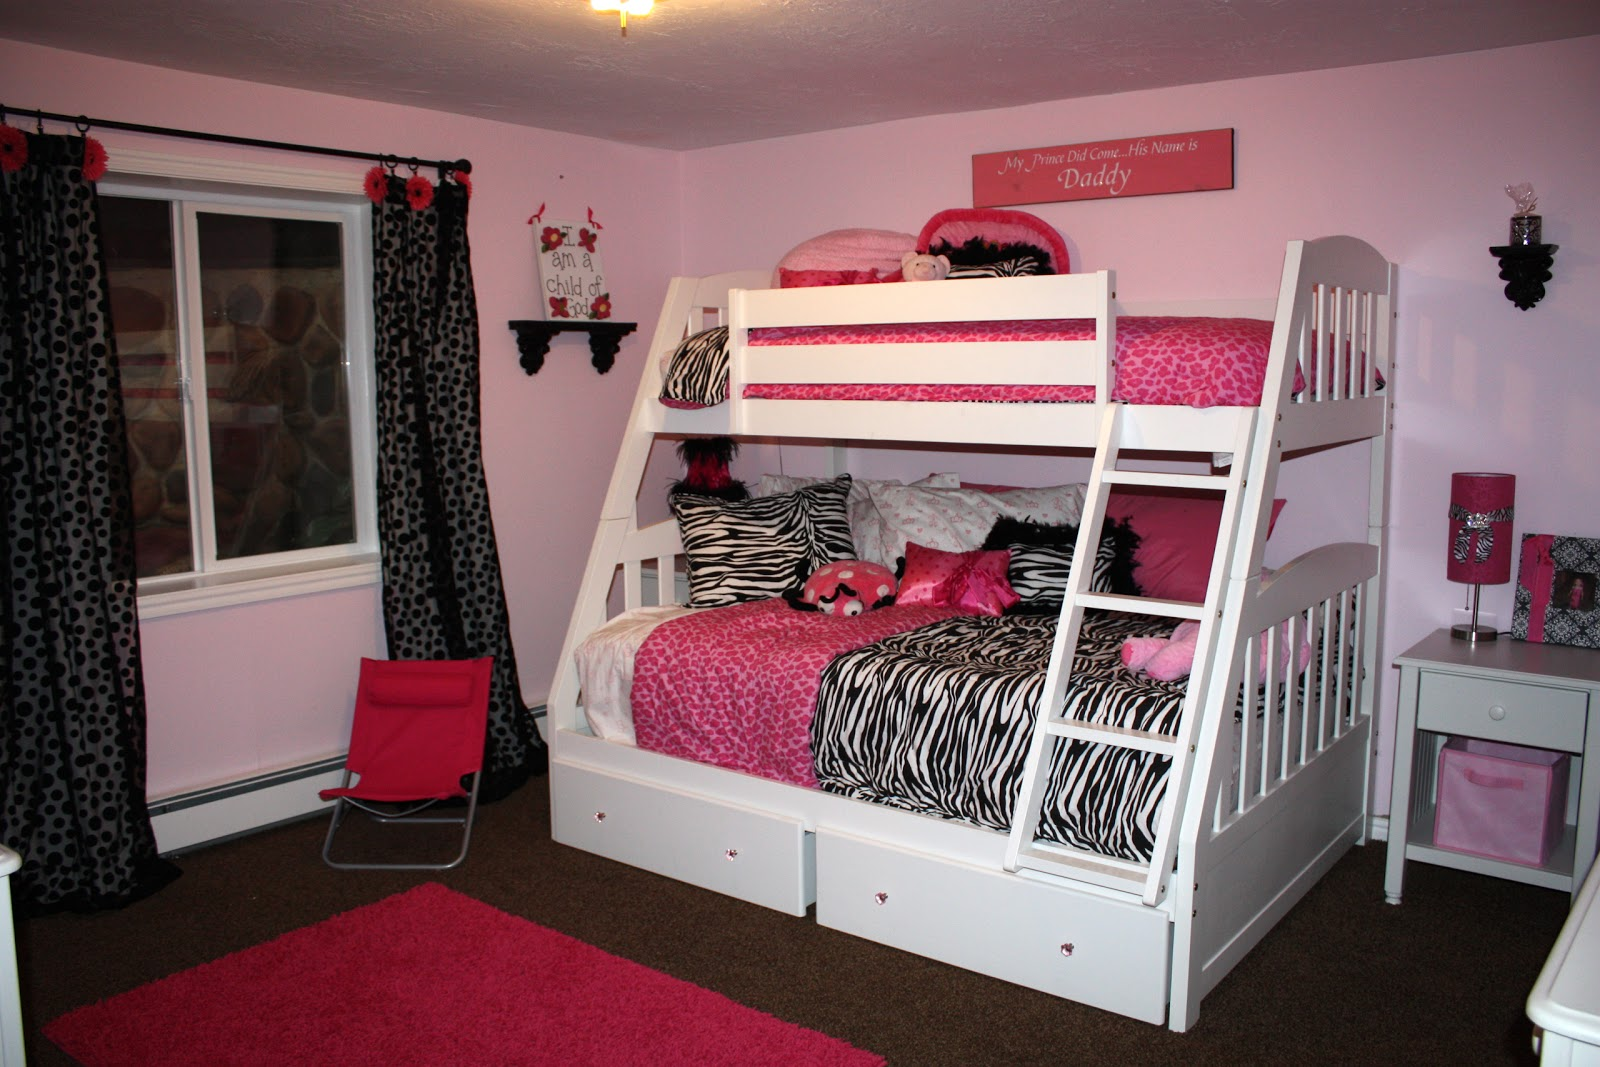 Wanna be balanced mom cute girls bedrooms for Girls bedroom decorating ideas with bunk beds